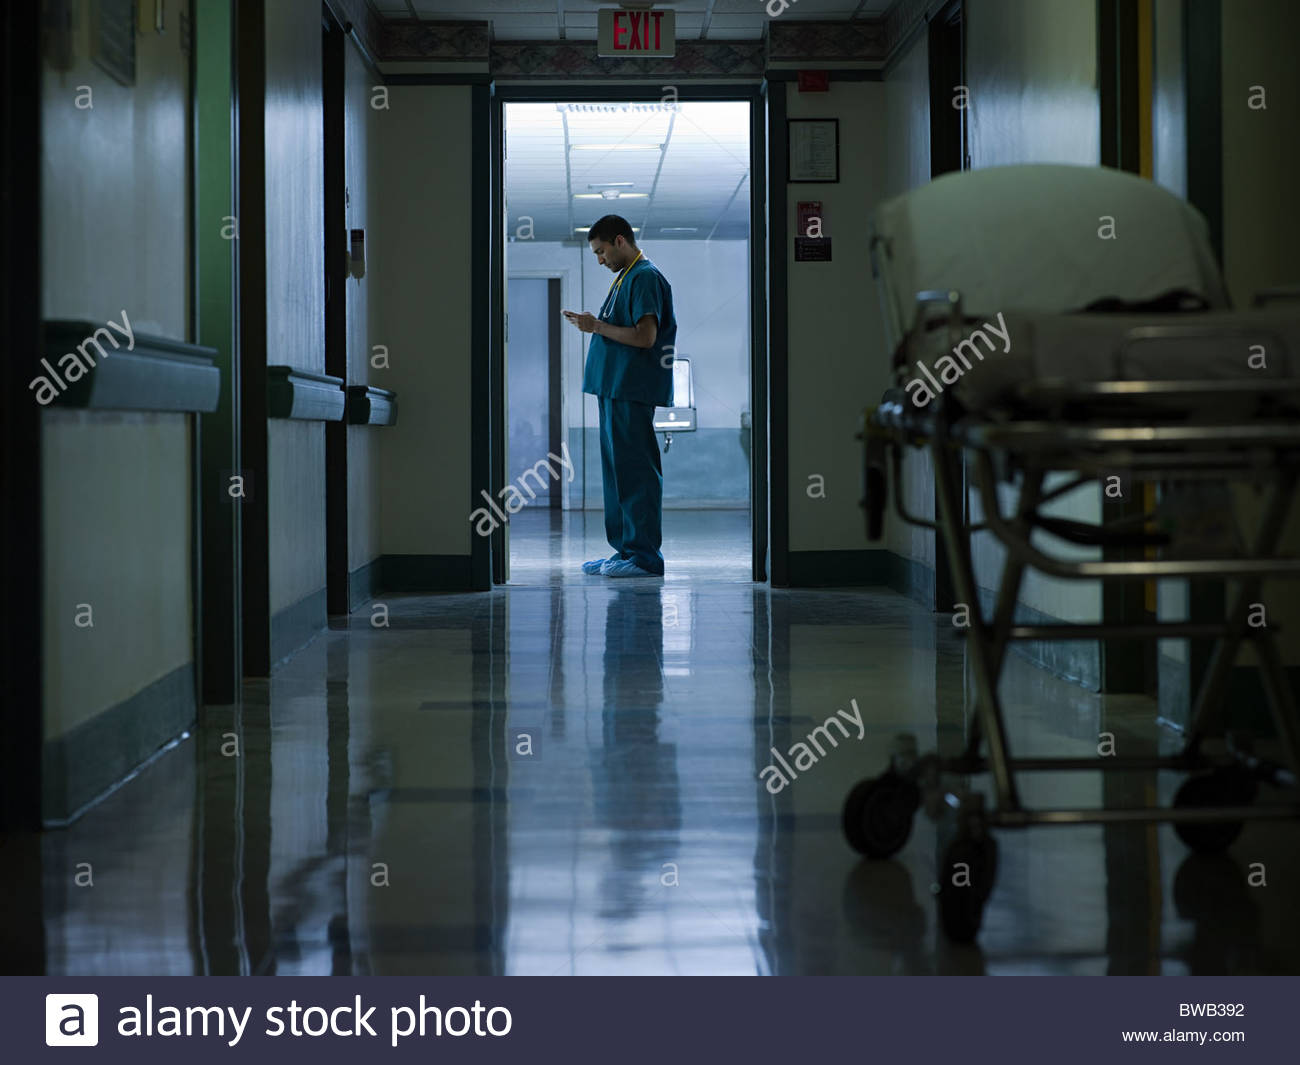 Male doctor in hospital corridor - Stock Image